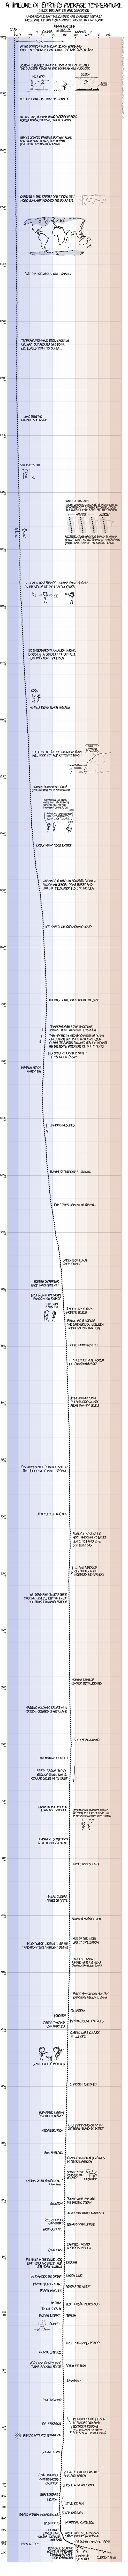 New xkcd Comic Masterfully Shows How Climate Has Changed Through Time